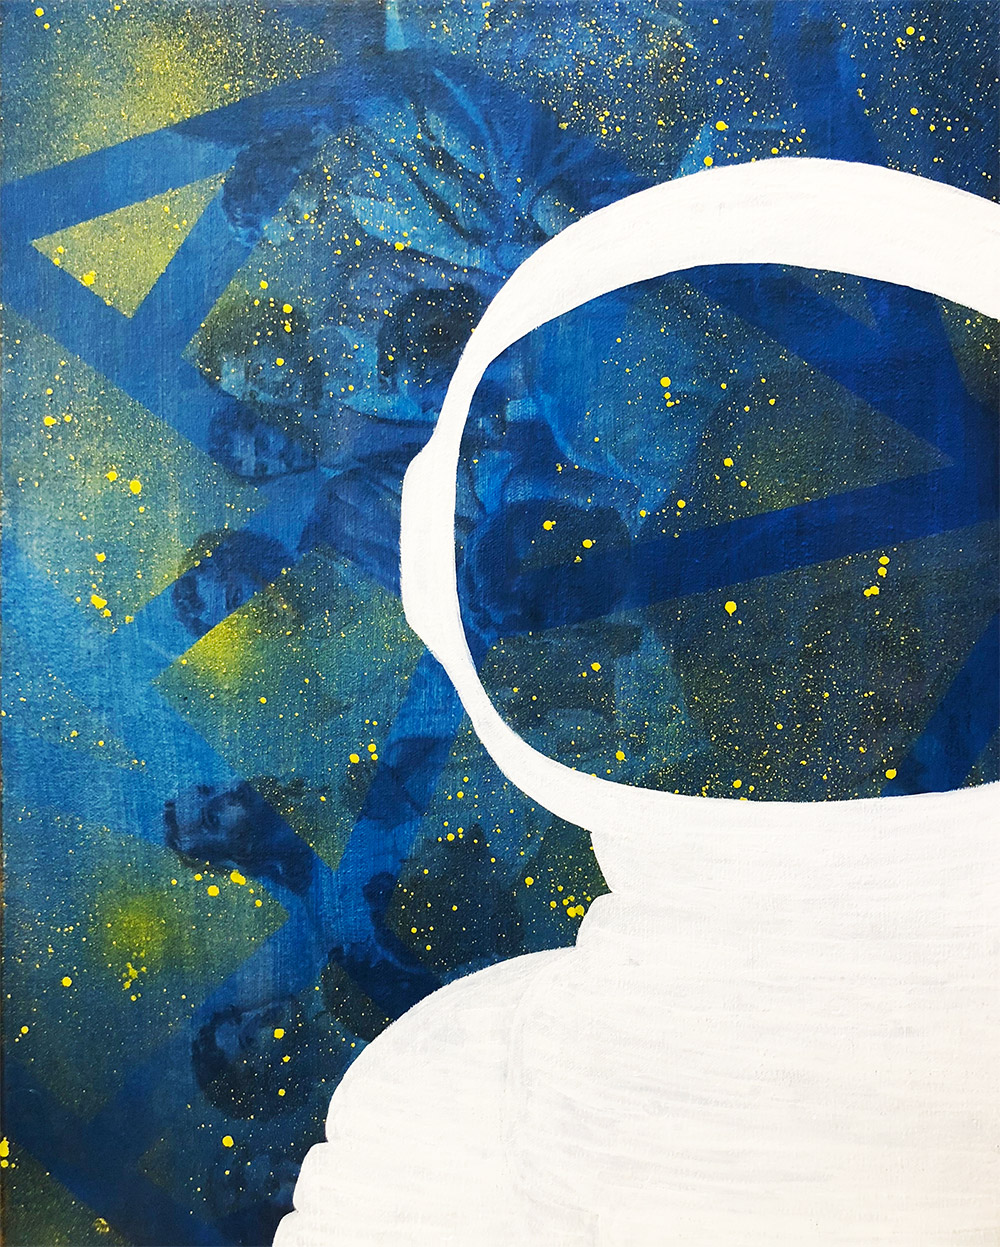 New Astronaut Painting in Progress